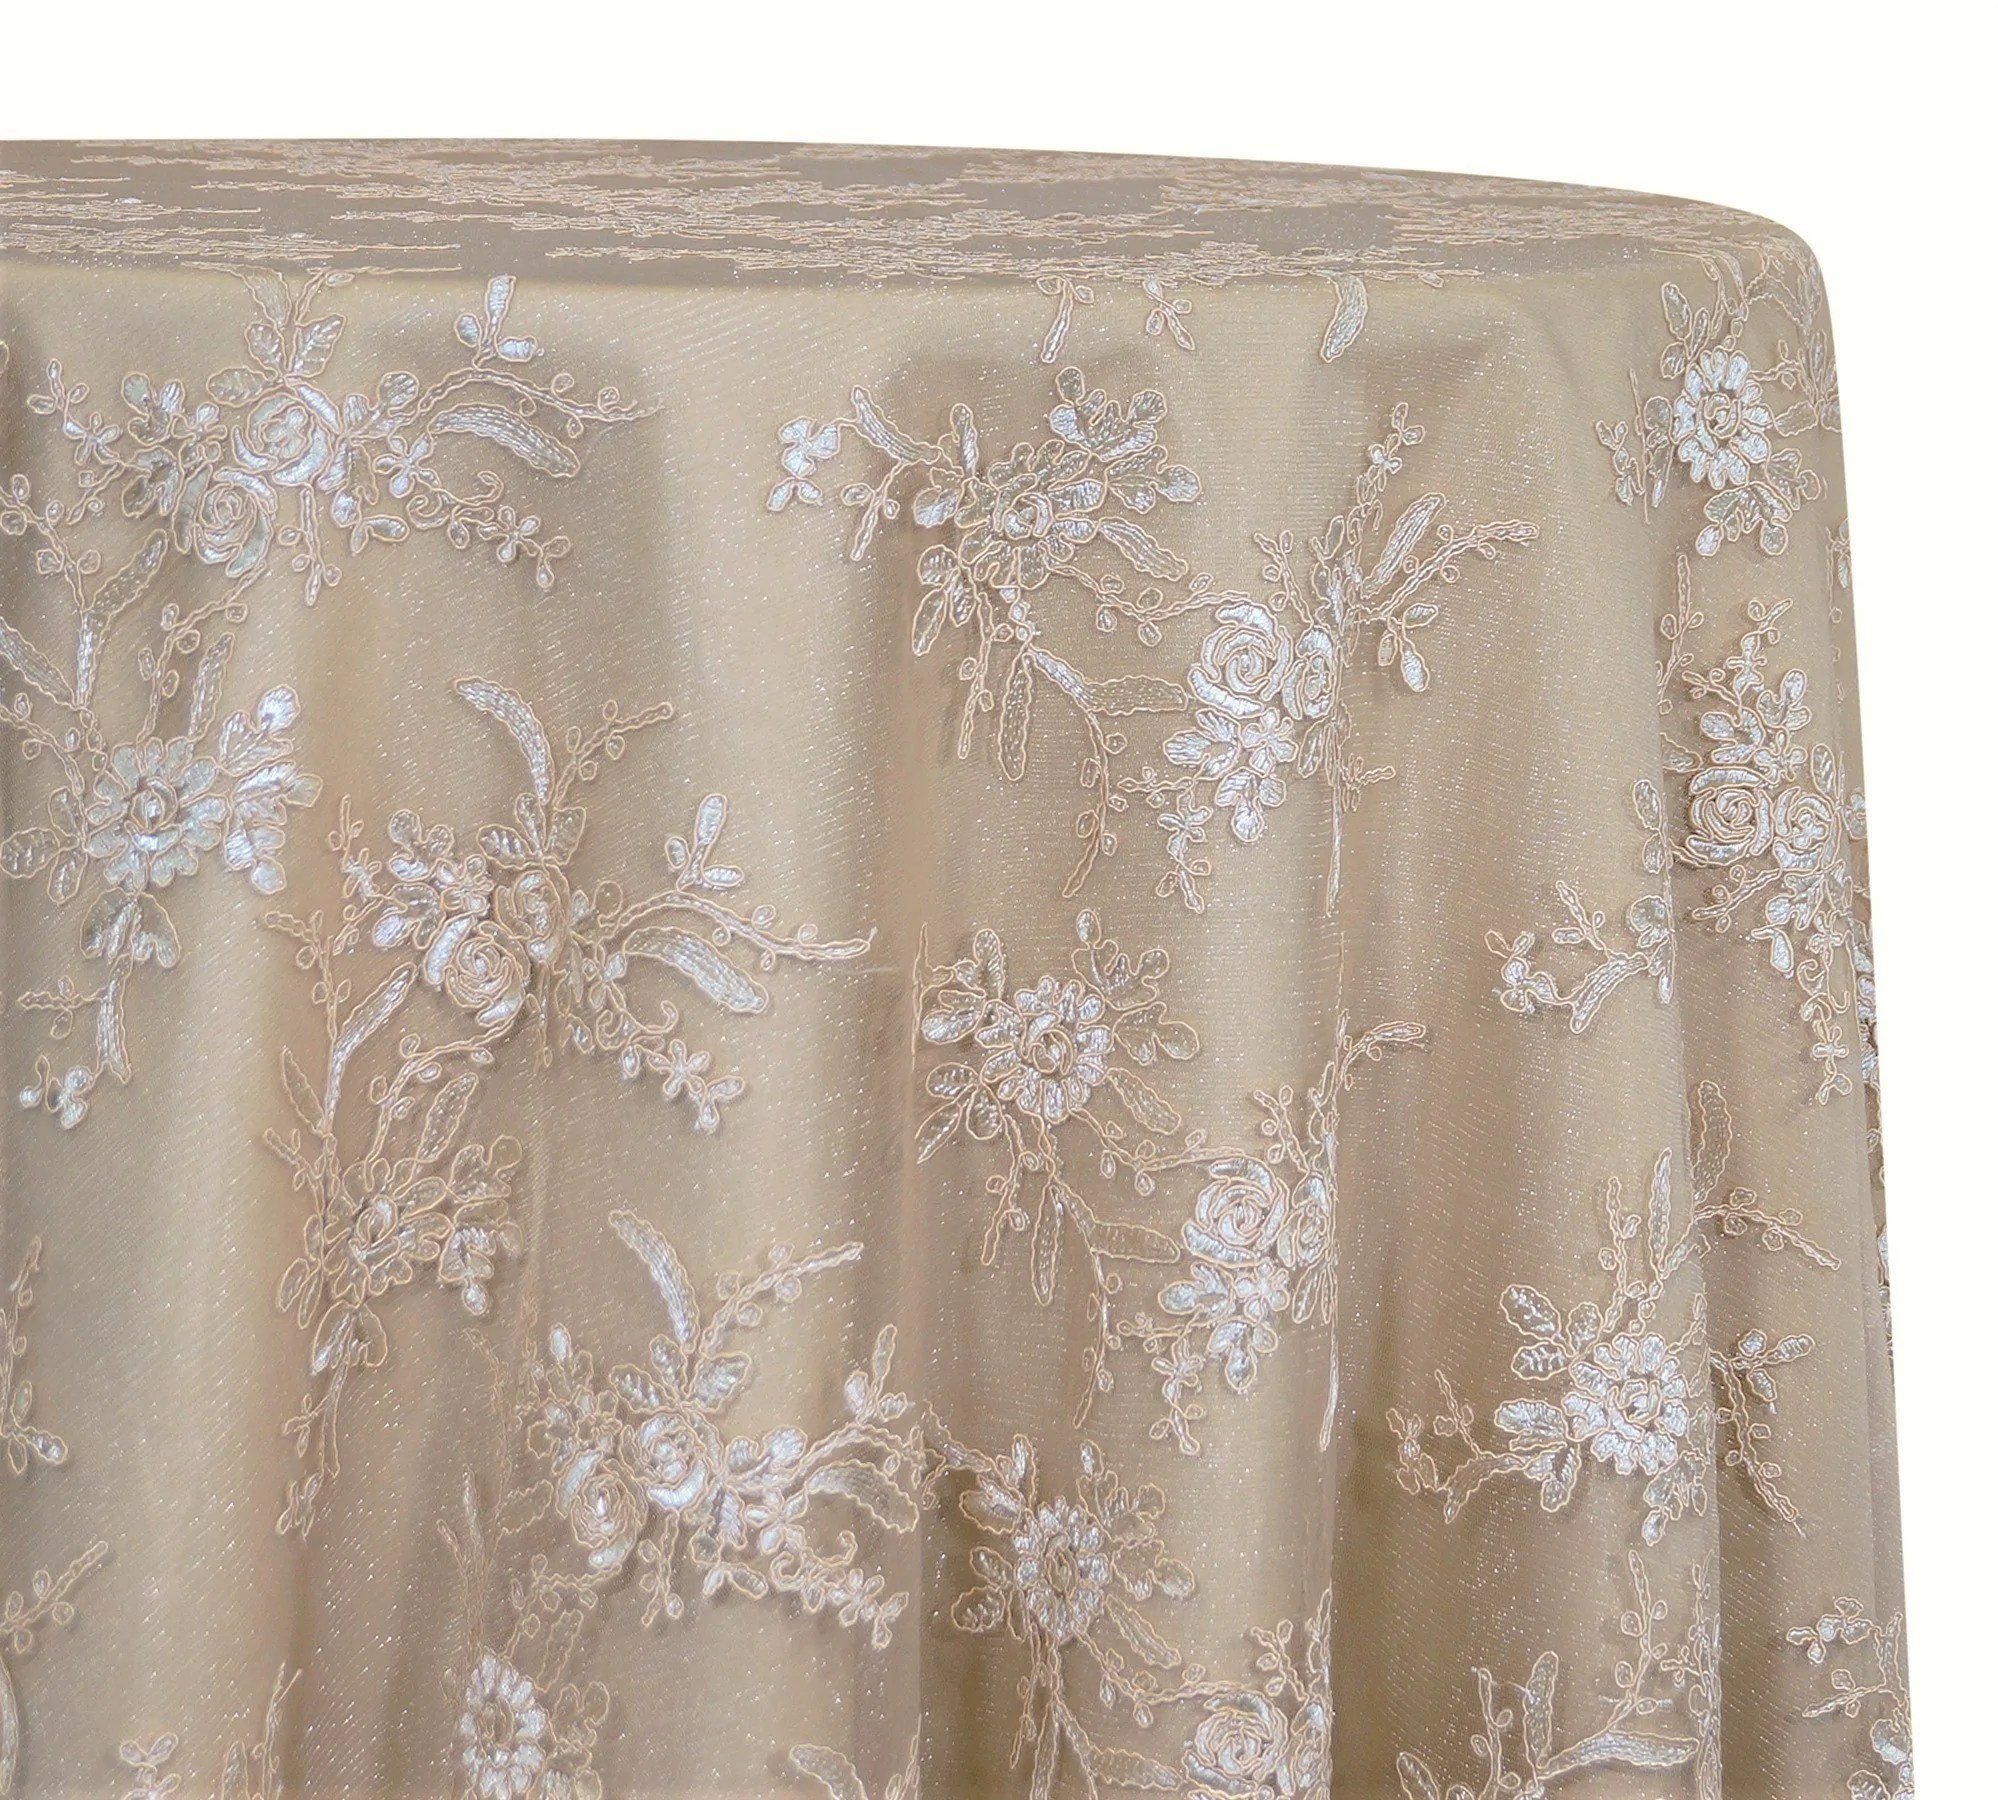 Laylani Lace  Ivory 120 Round Wedding Tablecloth